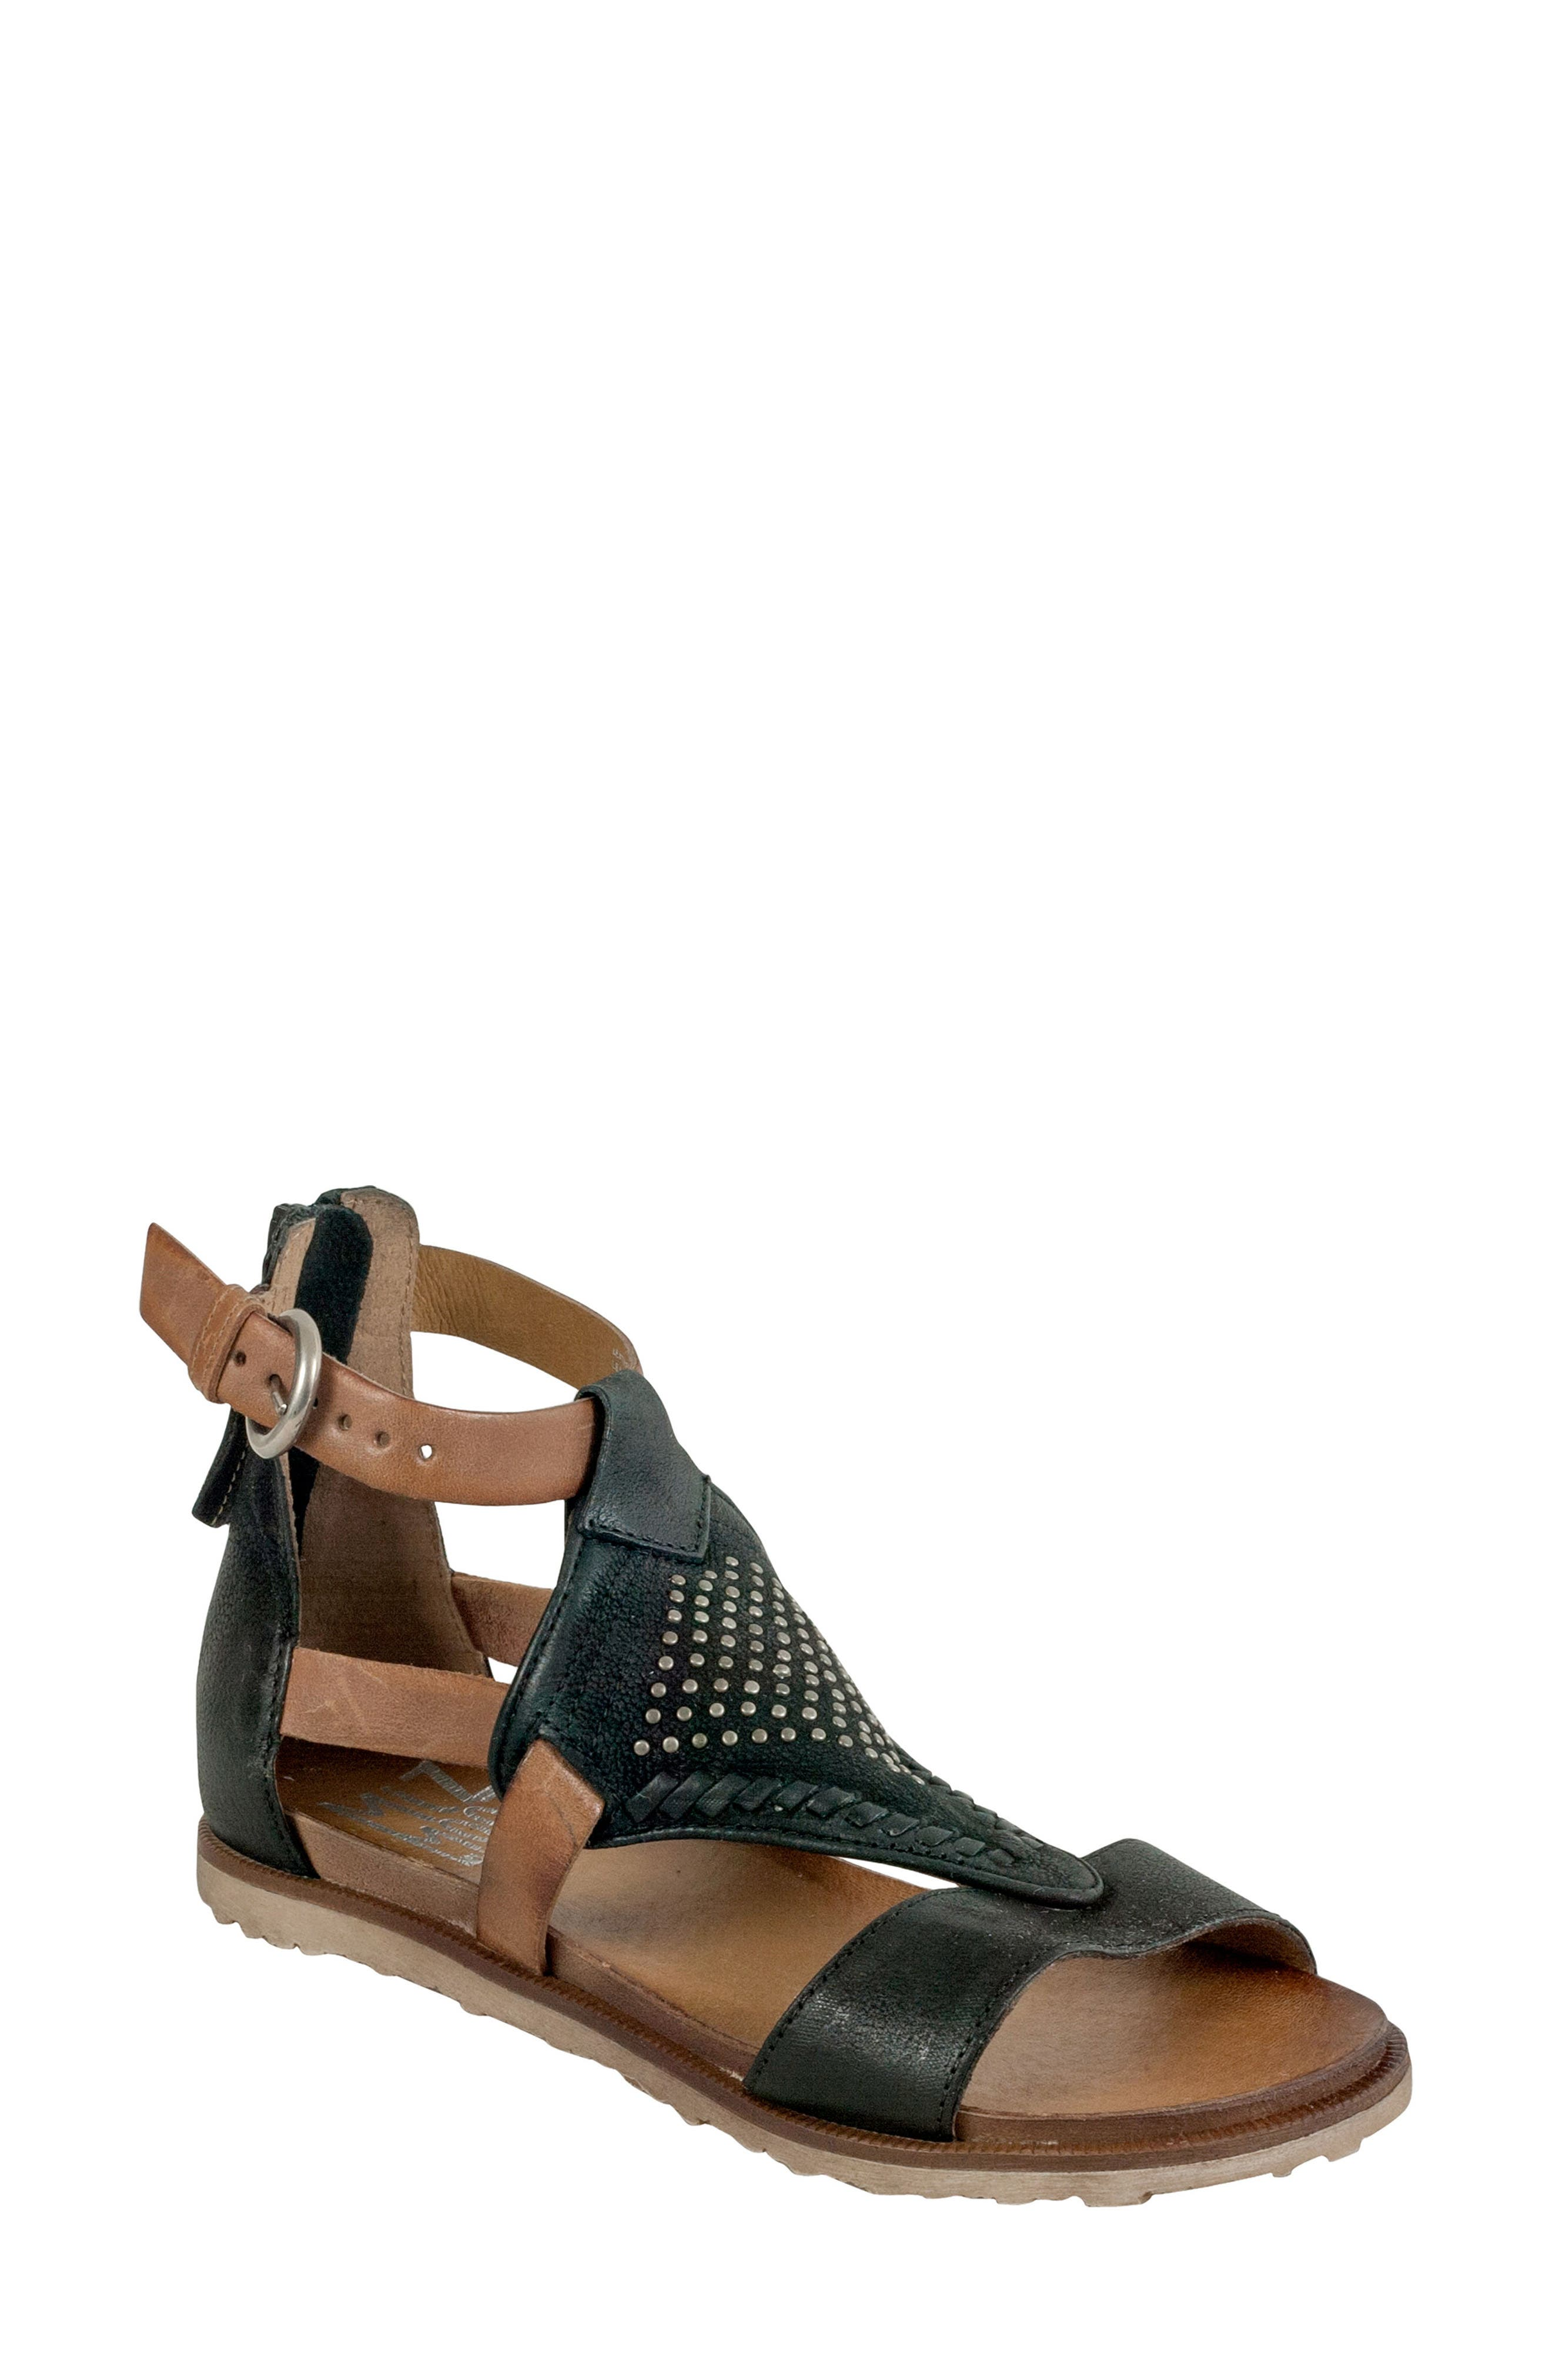 Miz Mooz Tessa Studded Diamond Sandal (Women)